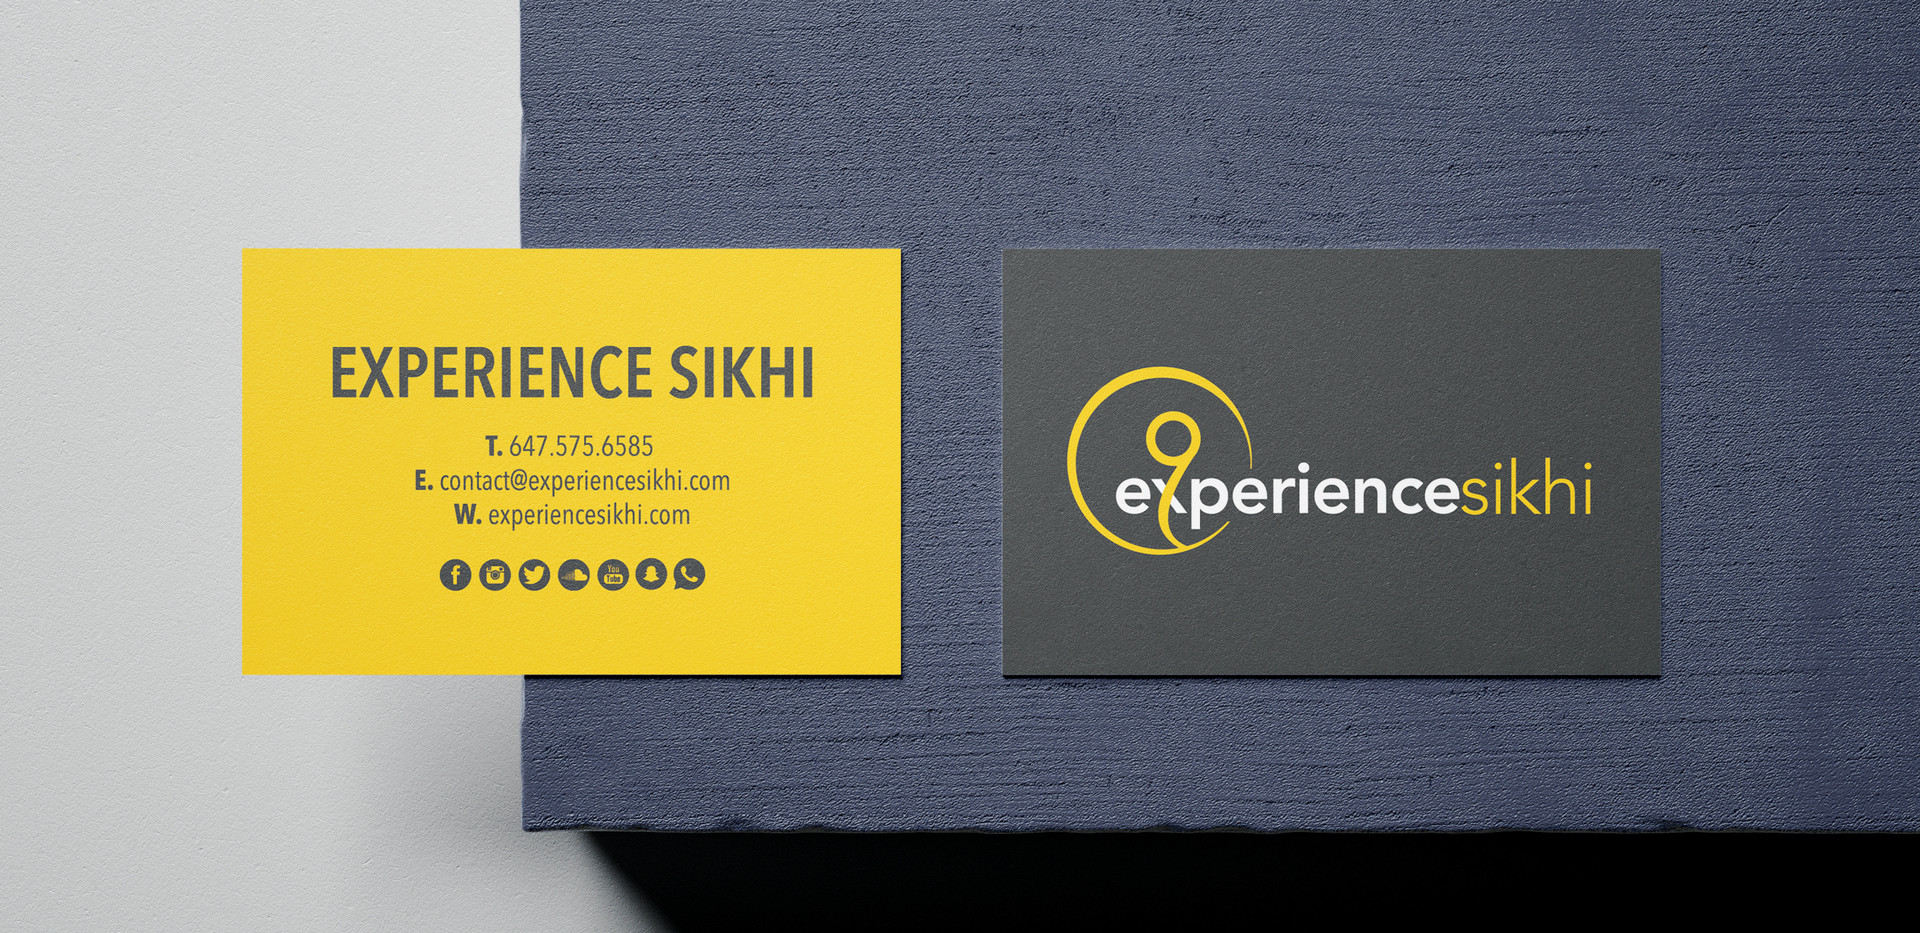 Experience Sikhi Business Cards